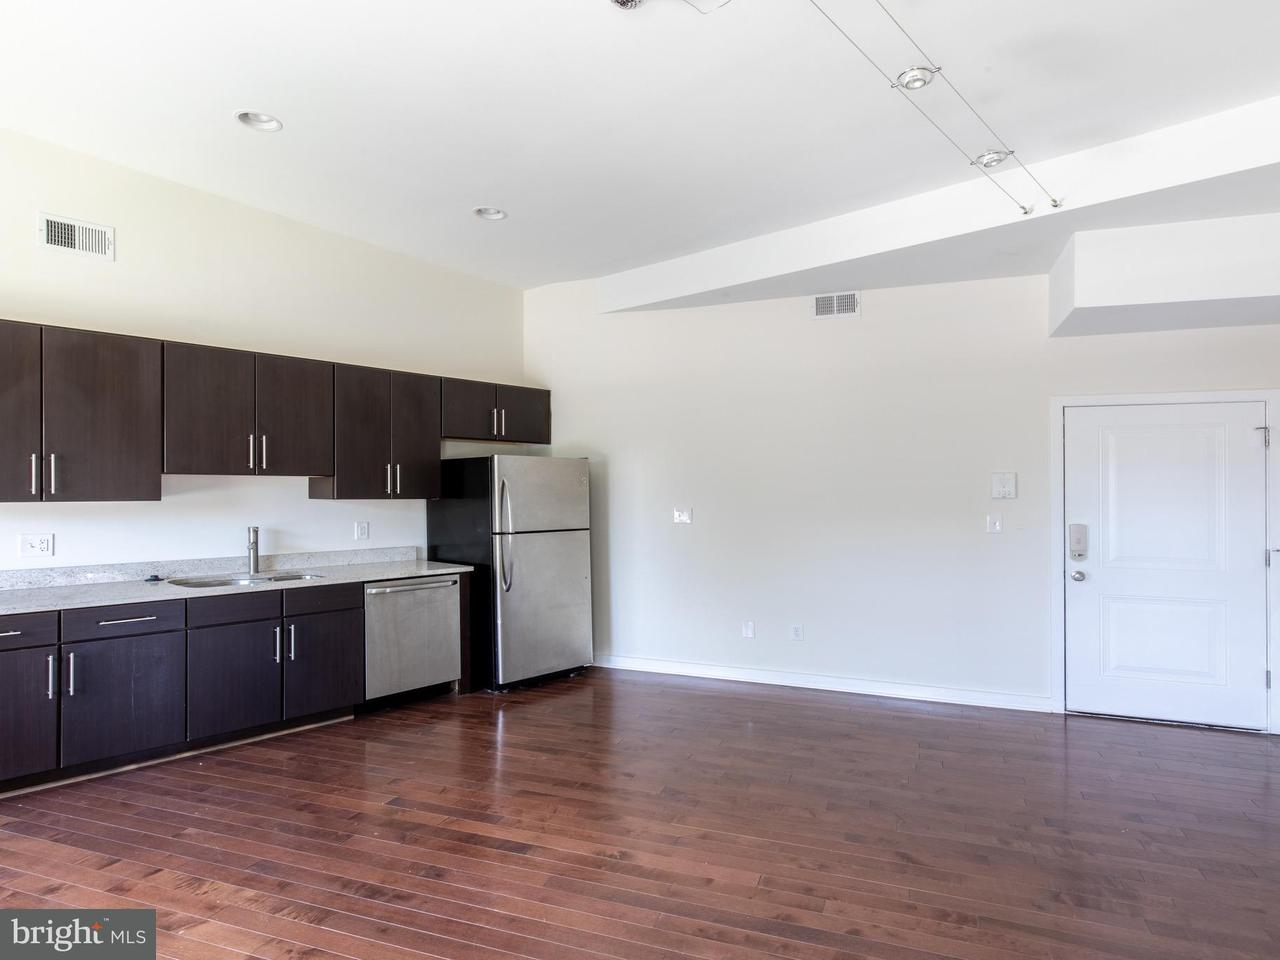 Condominium for Rent at 103 Missouri Ave NW #301 Washington, District Of Columbia 20011 United States